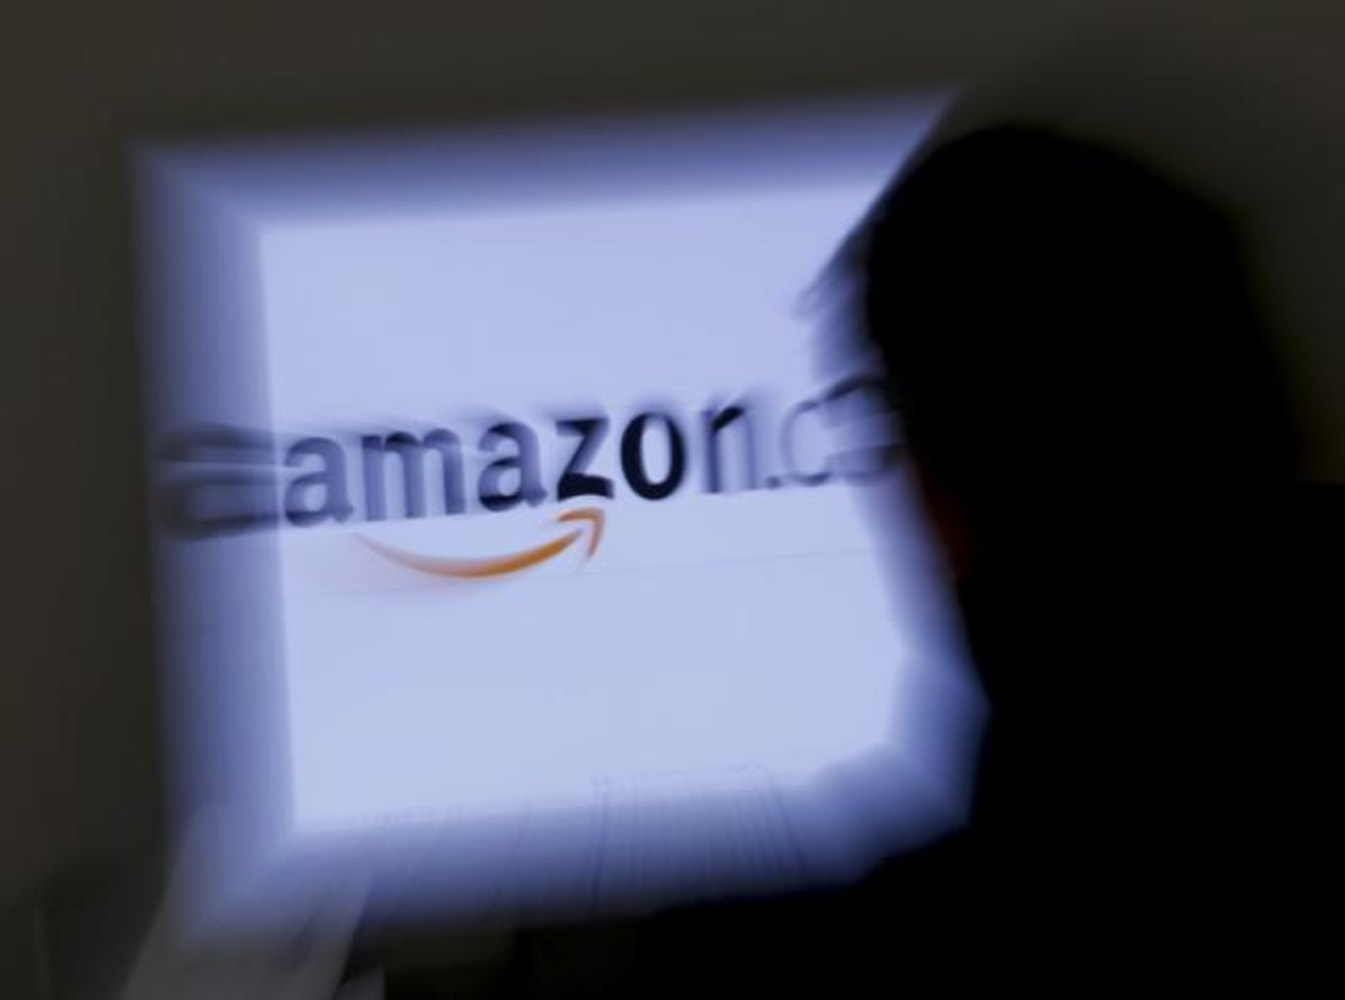 Amazon Instructed To Begin In-App Purchase Refund Process